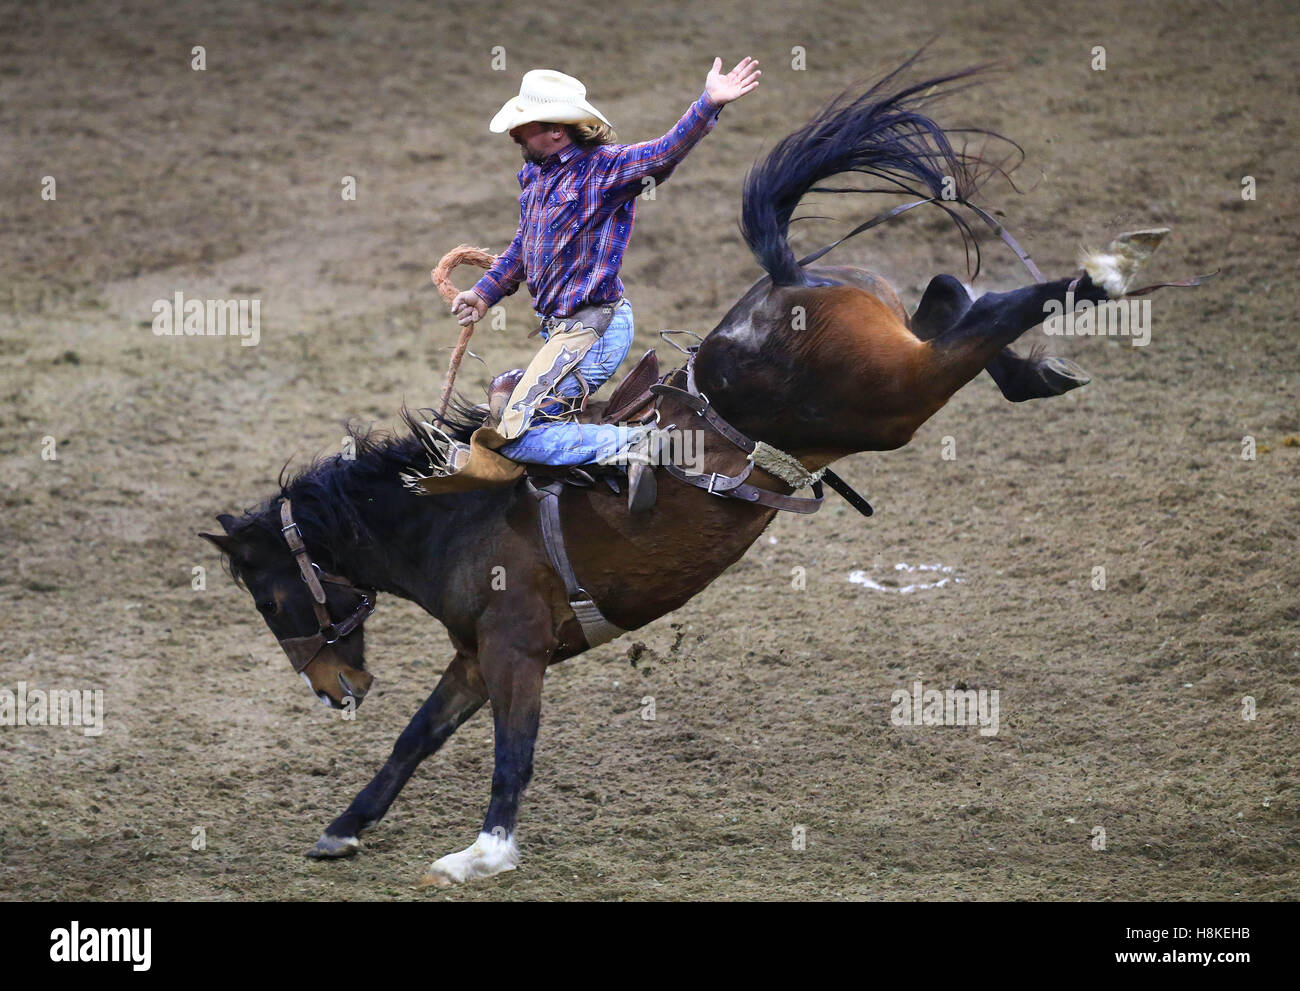 Toronto, Canada. 13th Nov, 2016. Cowboy Peter Hallman of Canada competes during the Rodeo section of the 2016 Royal - Stock Image